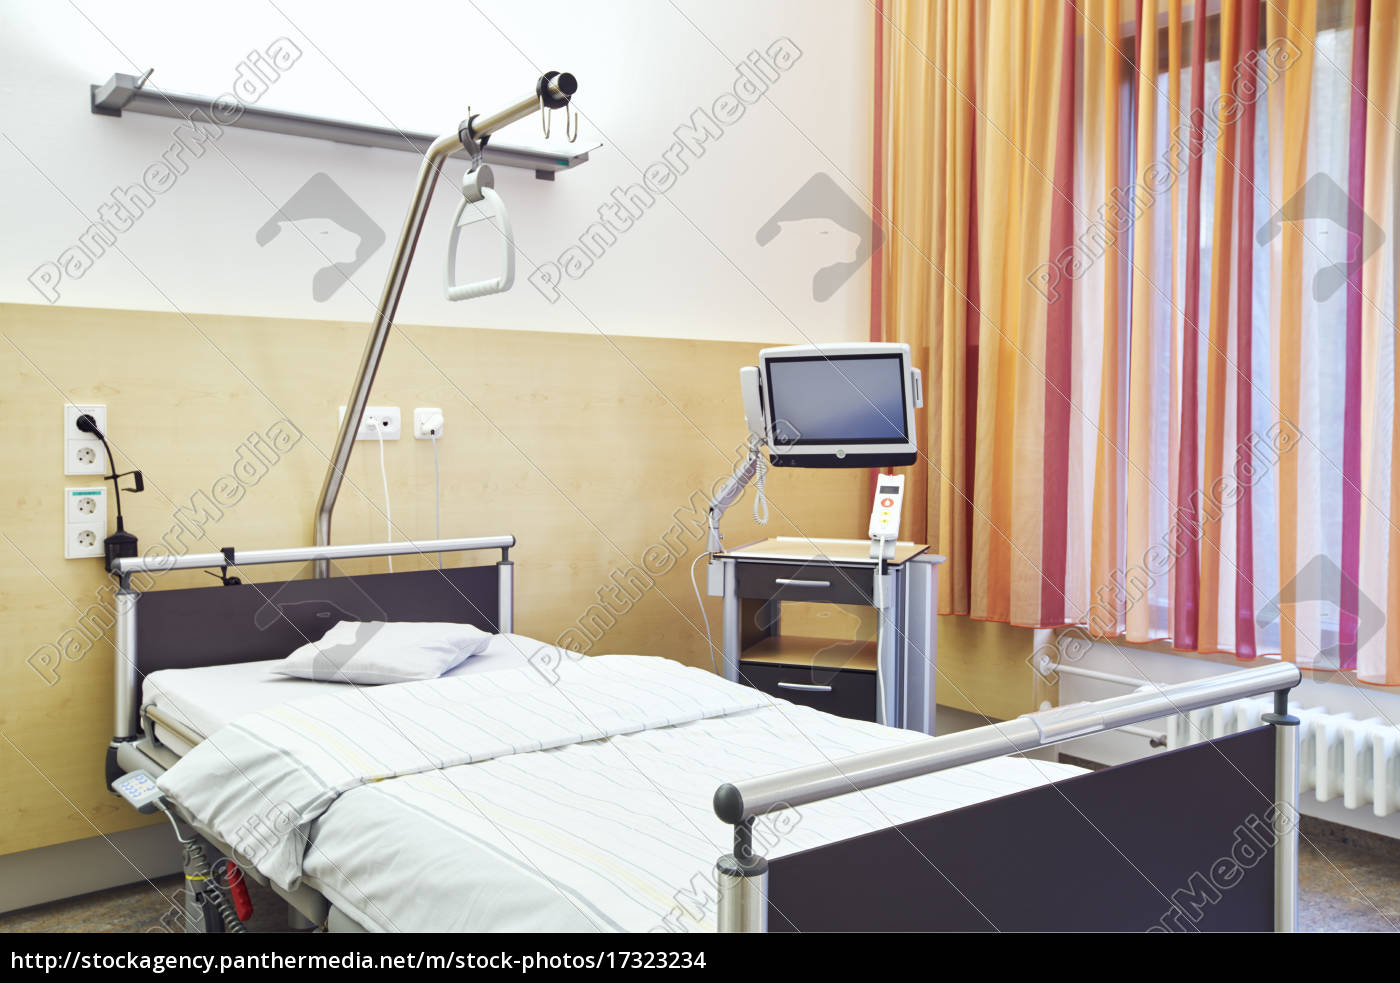 krankenhaus zimmer privat leer fernseher stock photo 17323234 bildagentur panthermedia. Black Bedroom Furniture Sets. Home Design Ideas